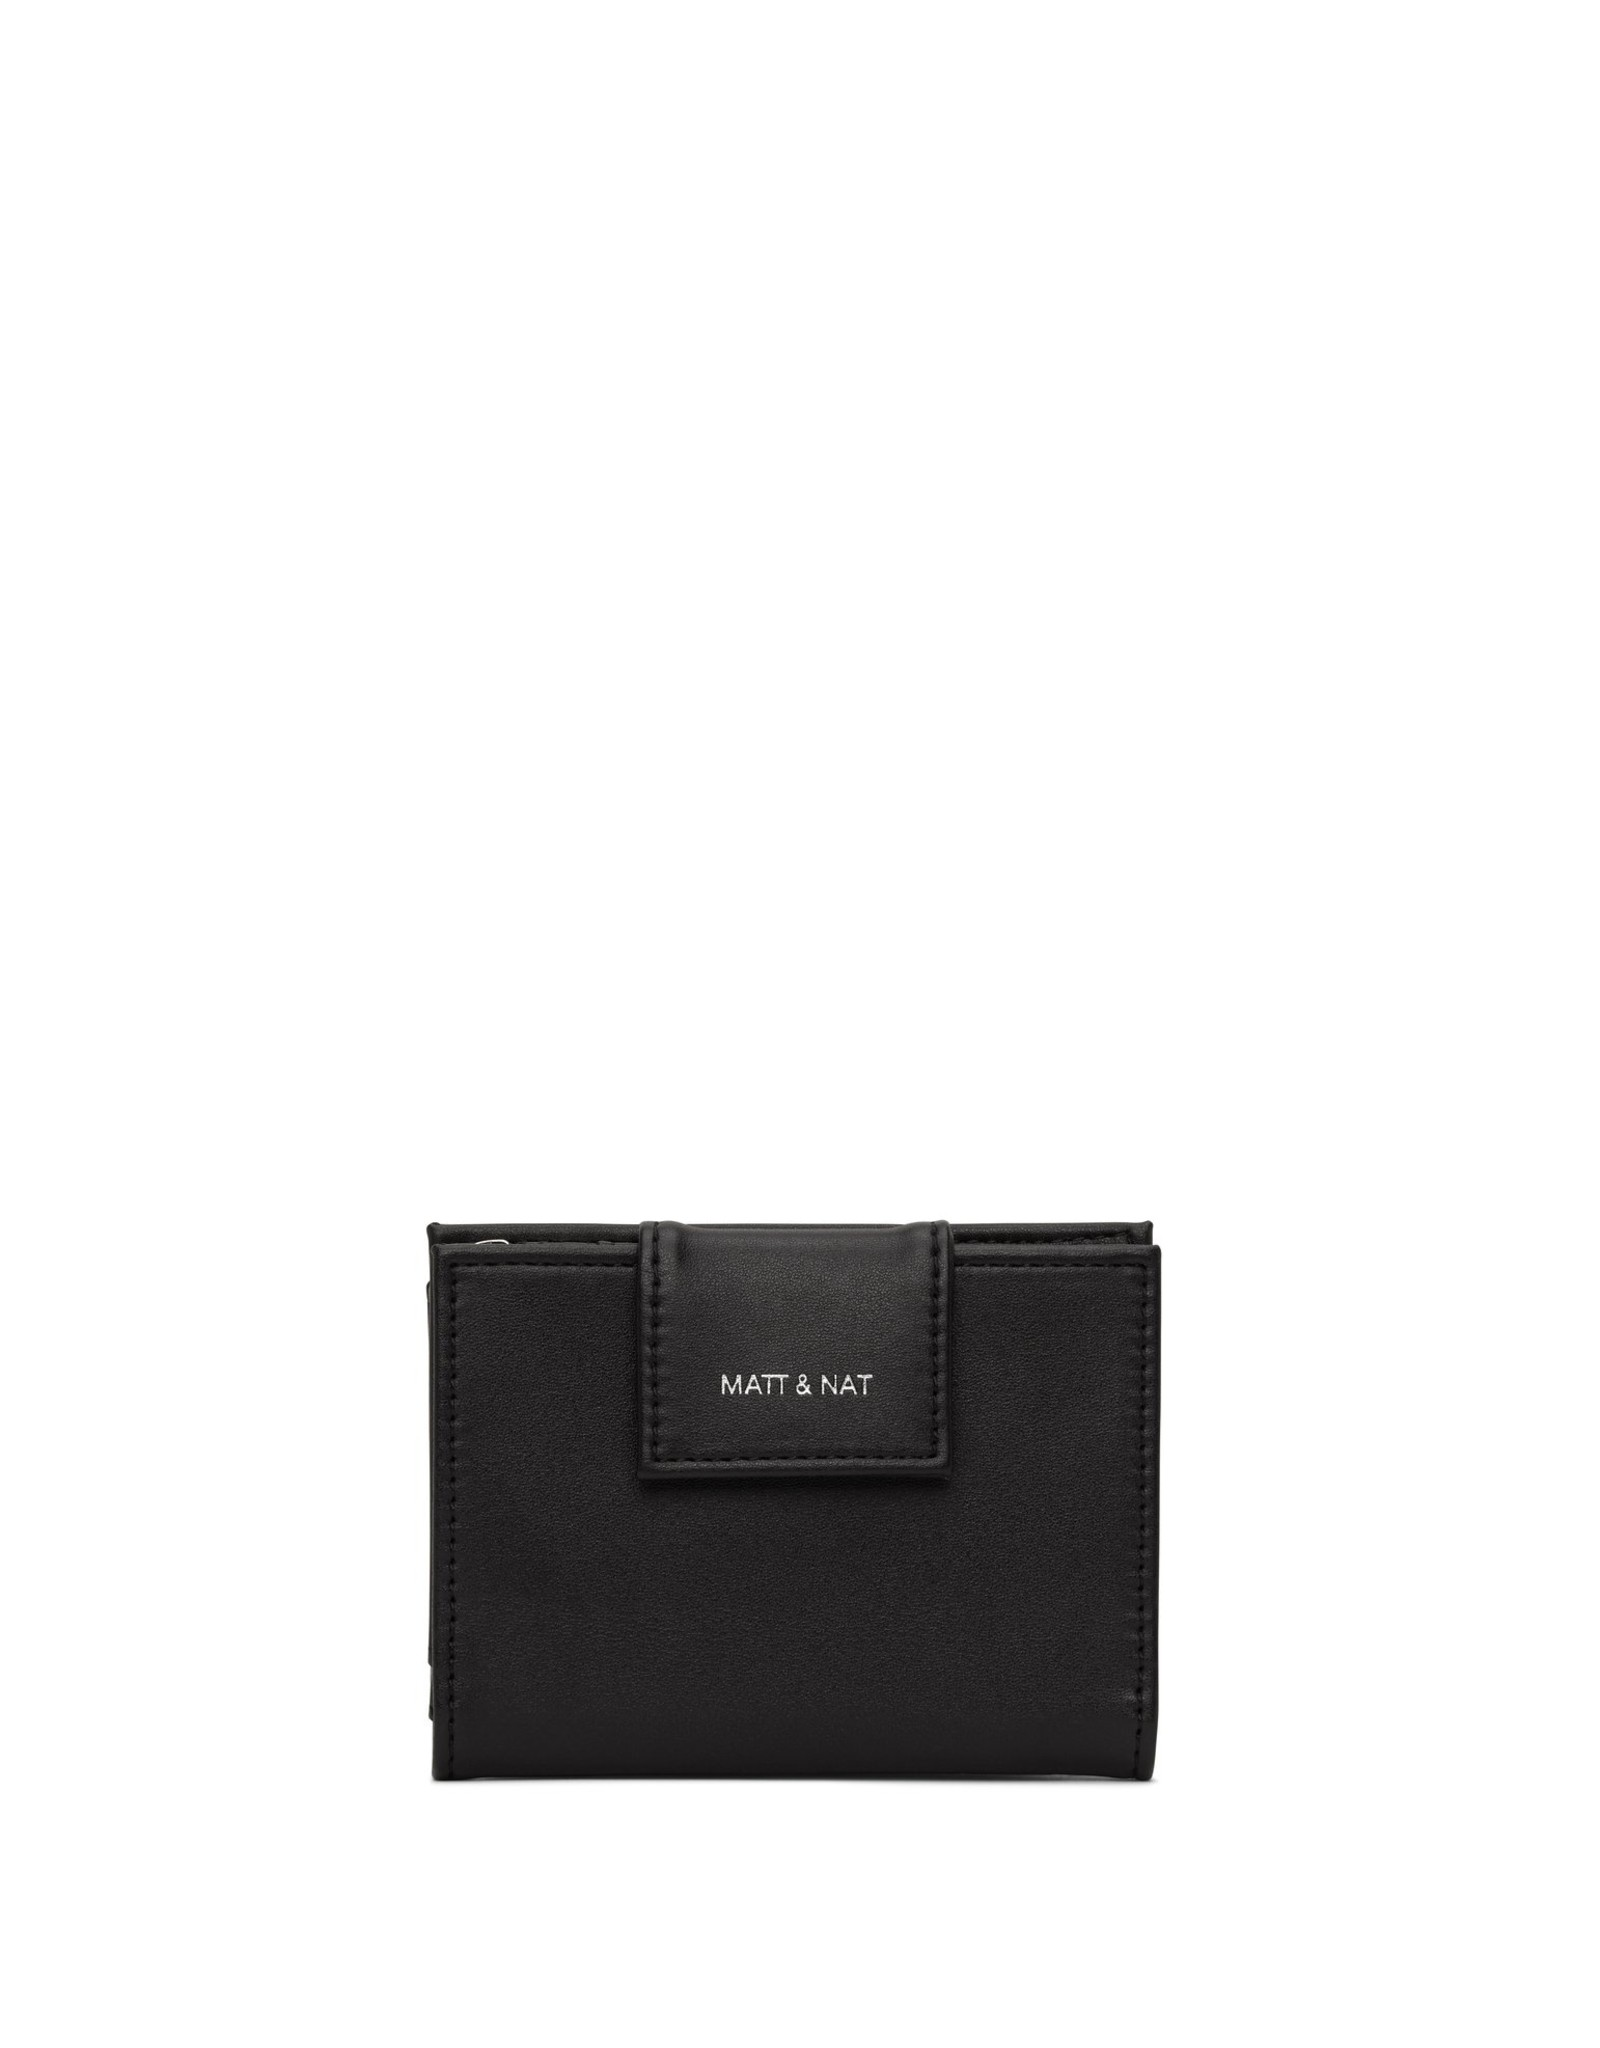 Matt & Nat - Cruise Small Wallet/Black